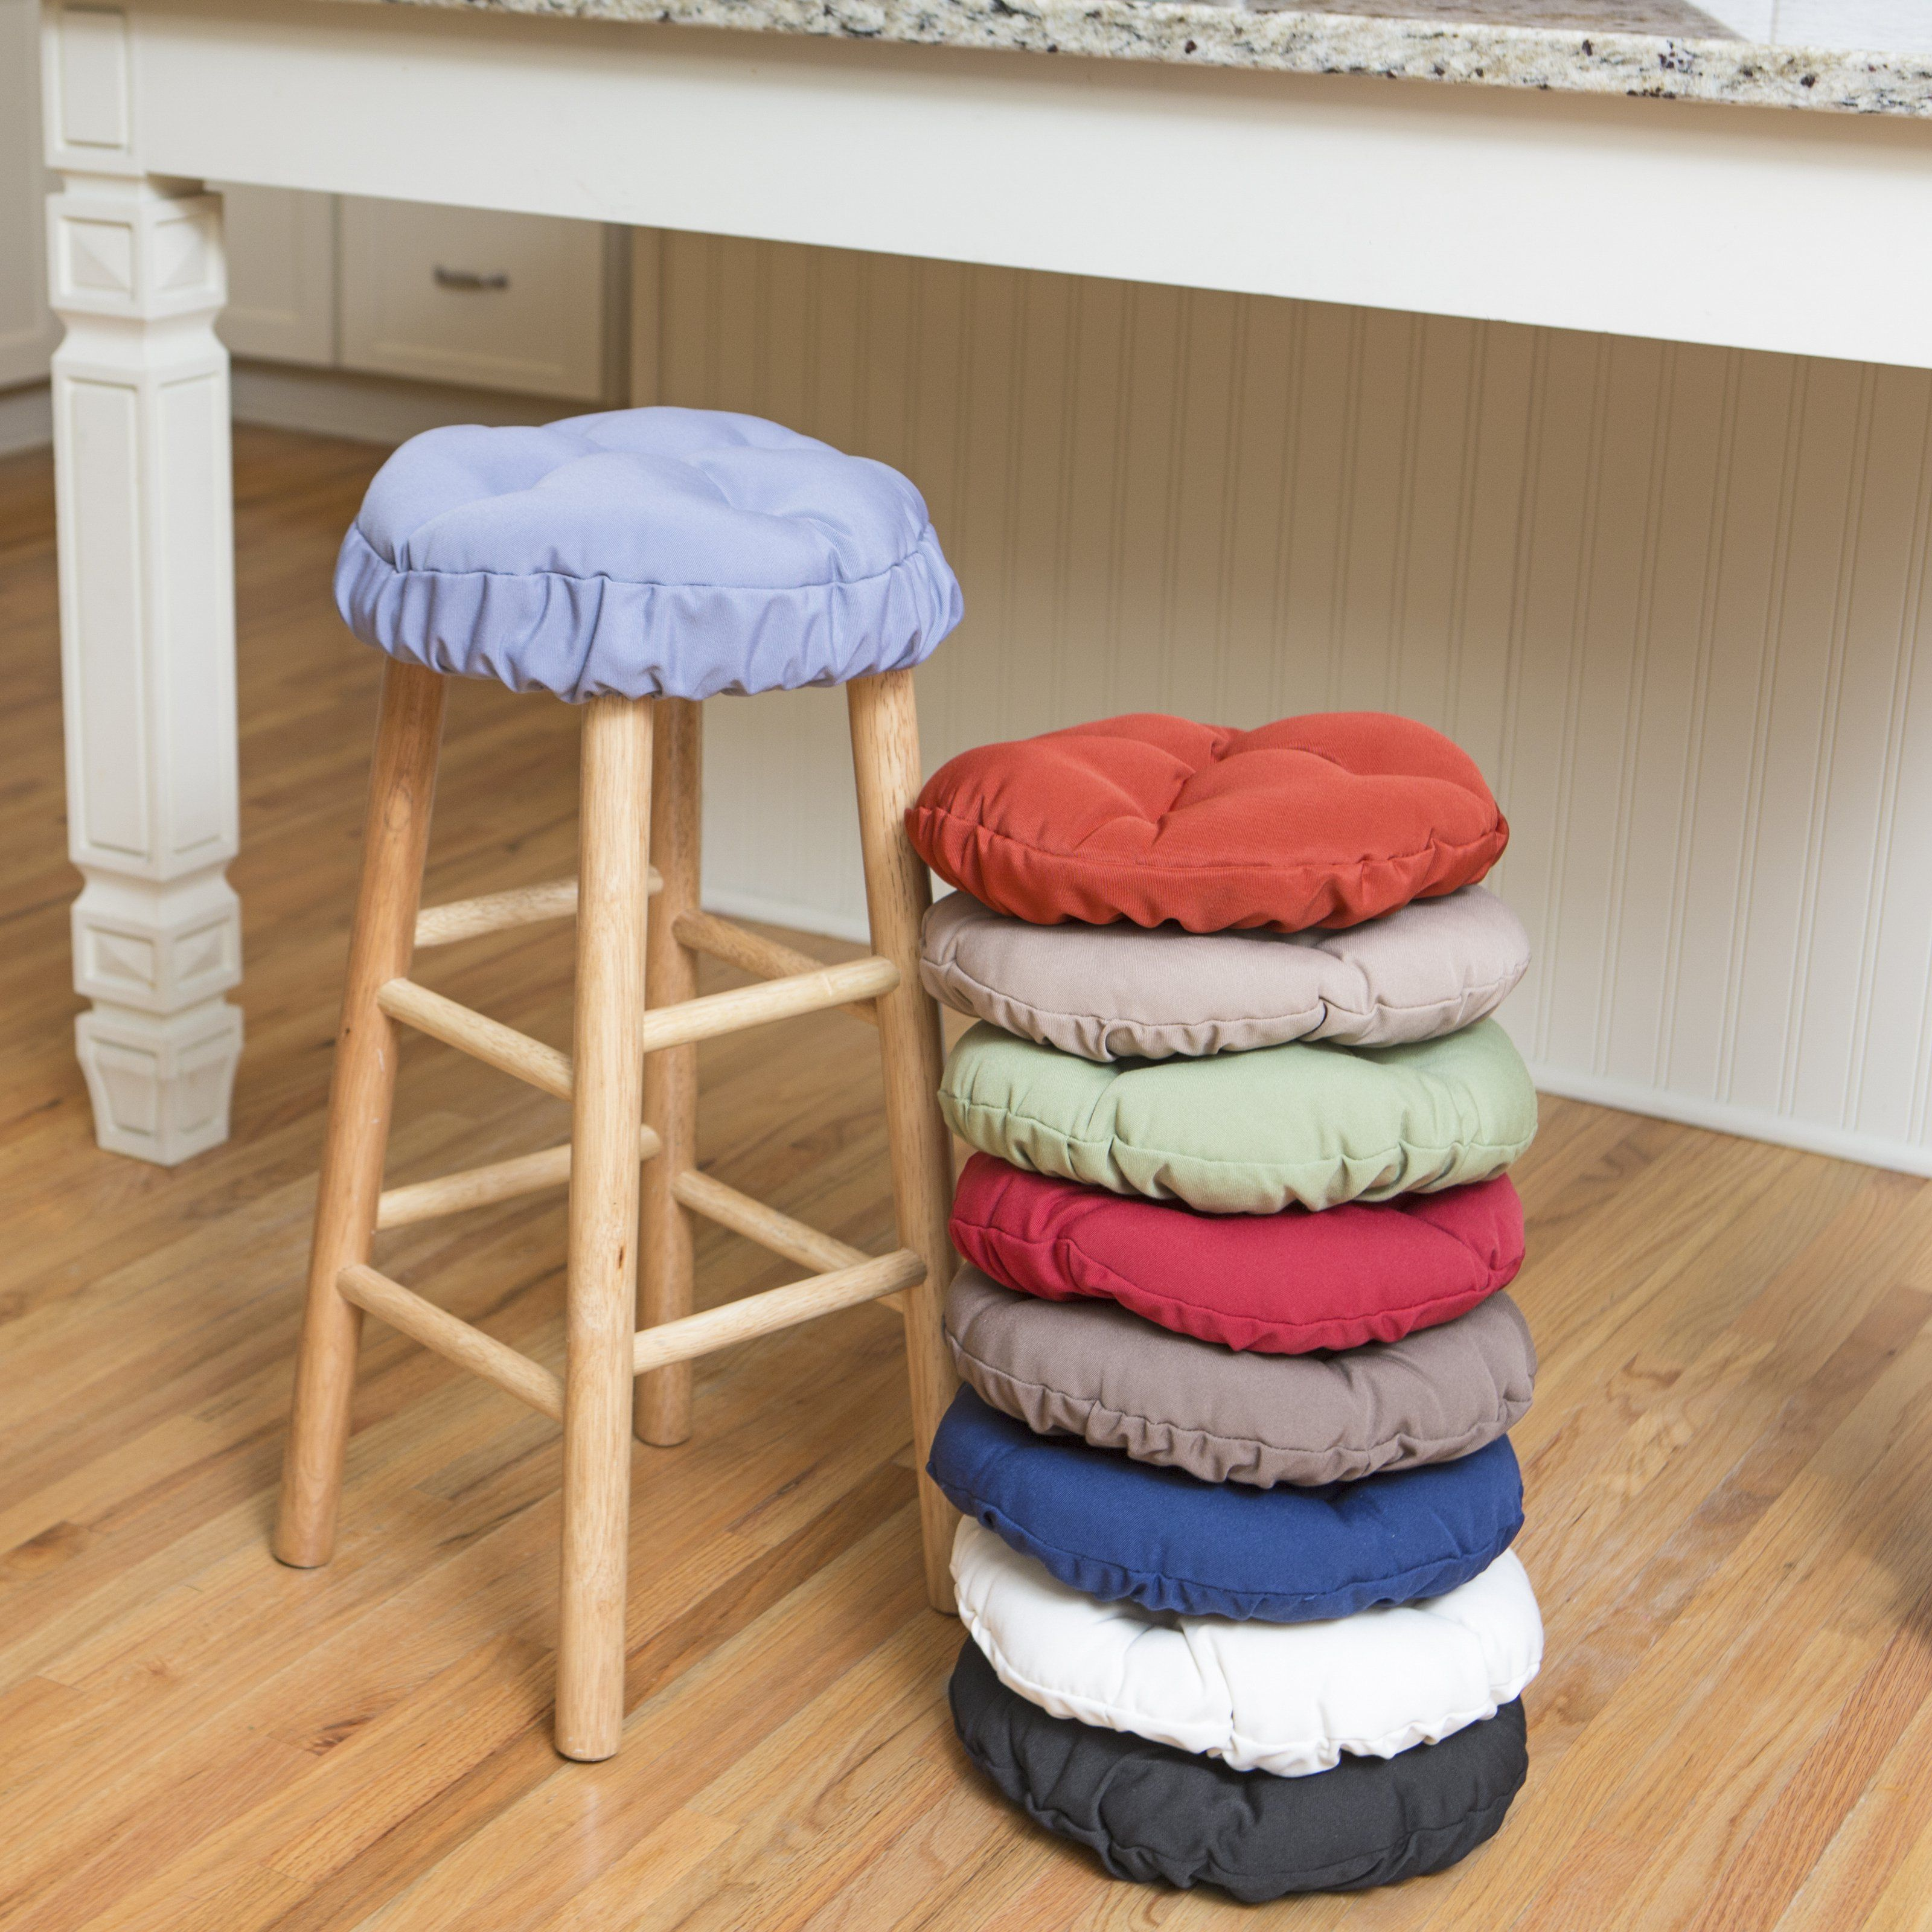 Deauville 13 In Round Backless Bar Stool Seat Cushion Bar Stool Cushions Bar Stools Round Bar Stools